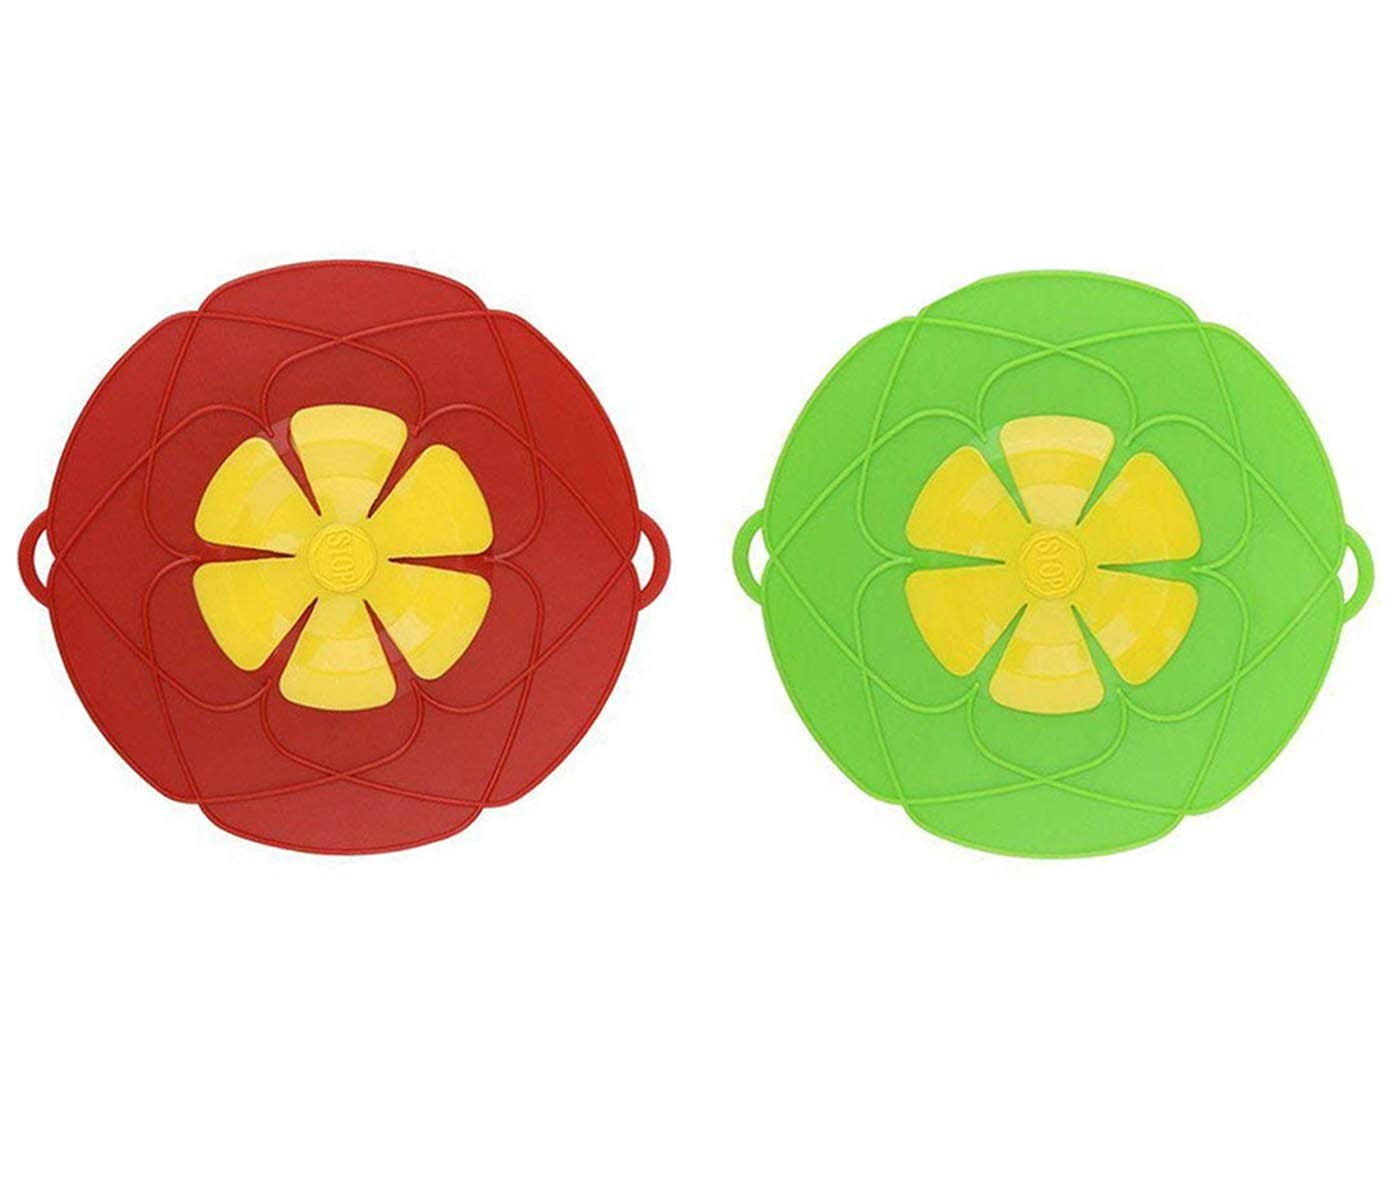 2Pcs Spill Stopper Lid Cover ,Boil Over Safeguard,Silicone Spill Stopper Pot Pan Lid Multi-Function Cooking Tool ,Kitchen Gadgets,Christmas Gift for Cooking lover,Parents,Friends, Green& Red OYOY